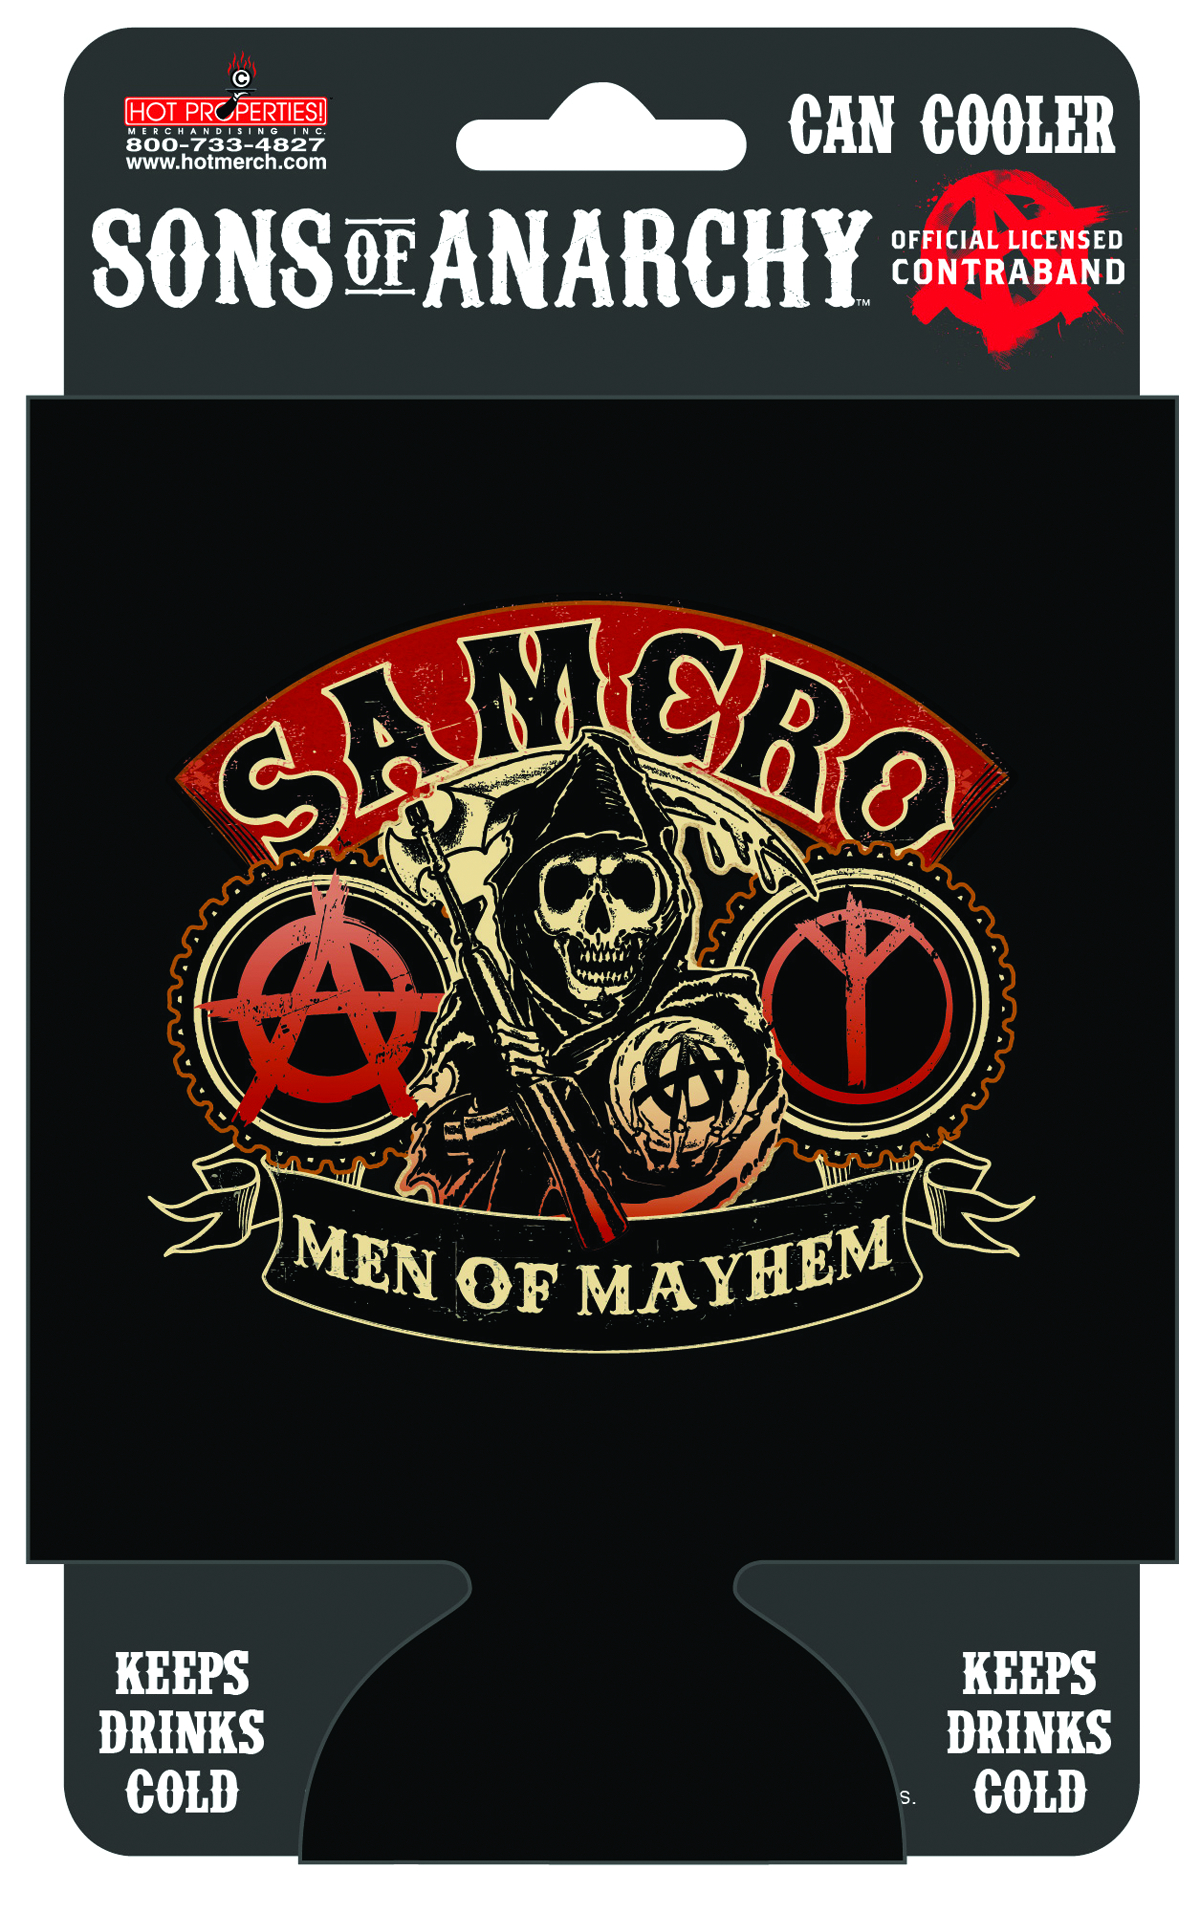 SONS OF ANARCHY MEN OF MAYHEM CAN COOLER